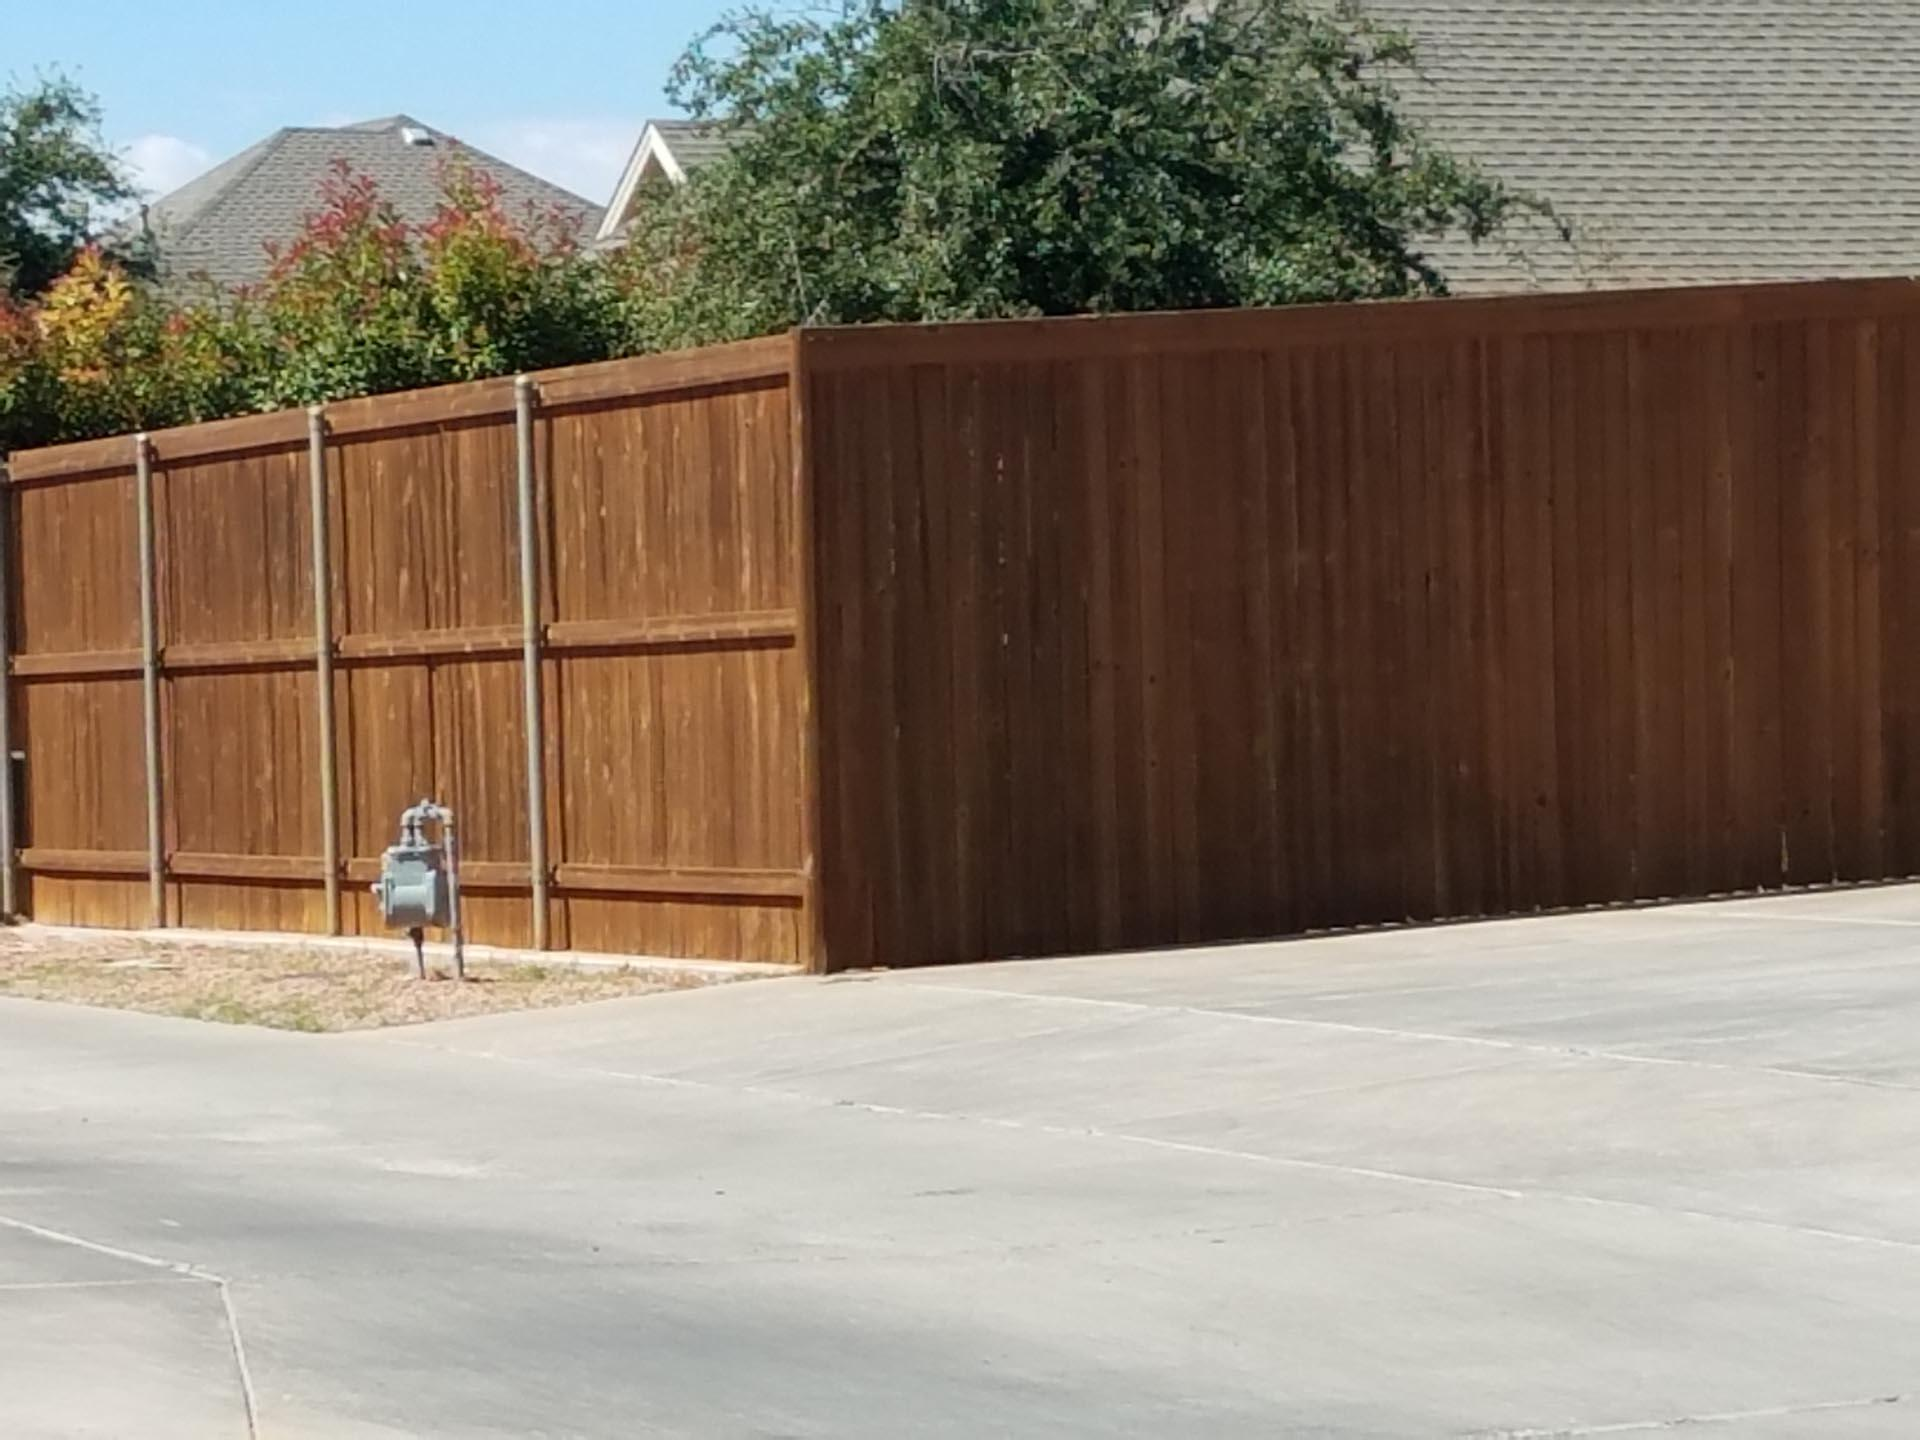 Best Value Fencing And Home Services image 18